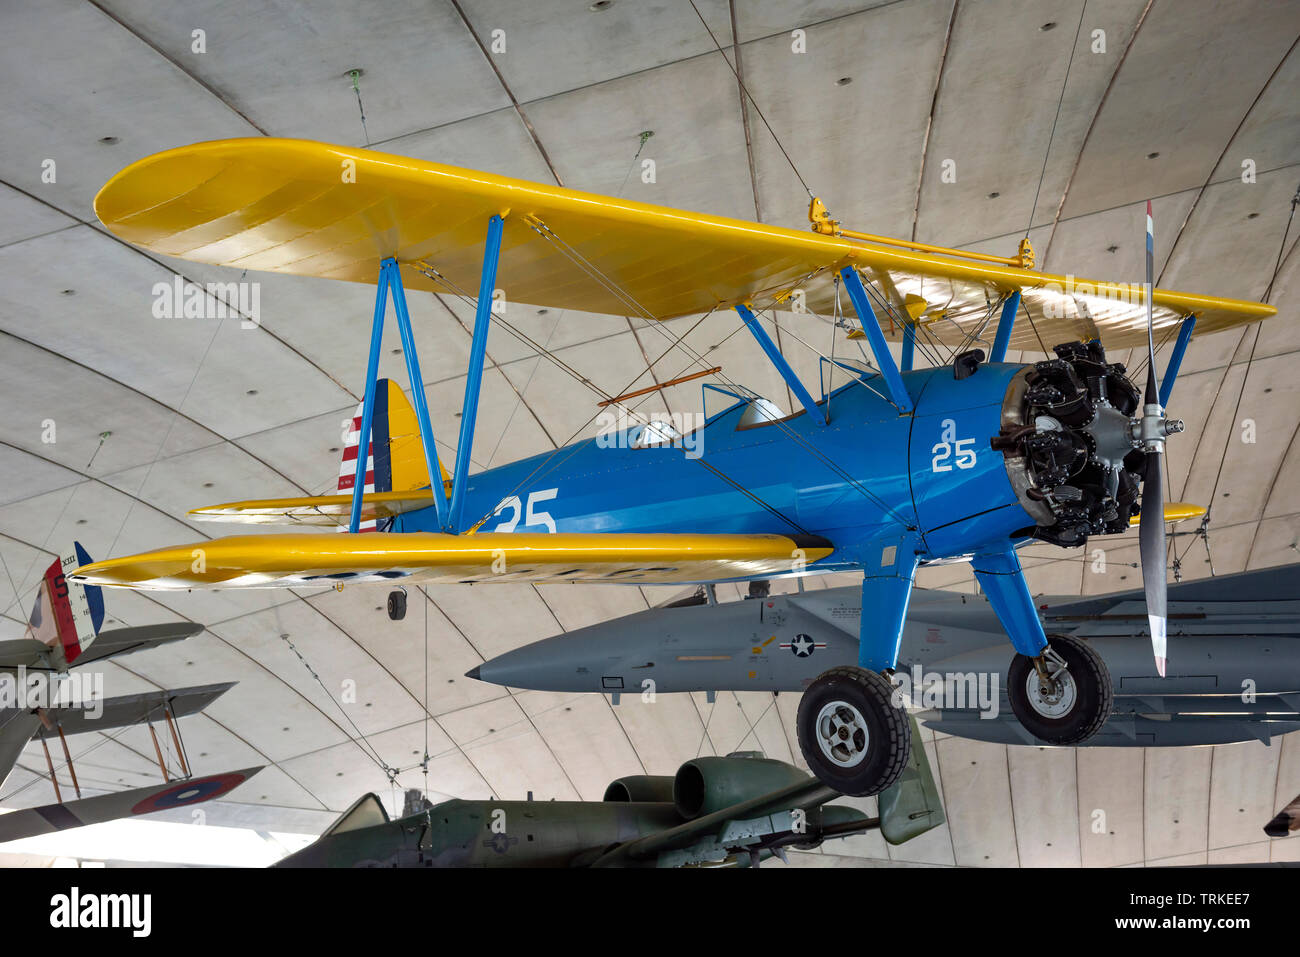 Boeing-Stearman Model 75 (PT-17) trainer biplane at the Imperial War Museum, Duxford, Cambridgeshire, UK - Stock Image